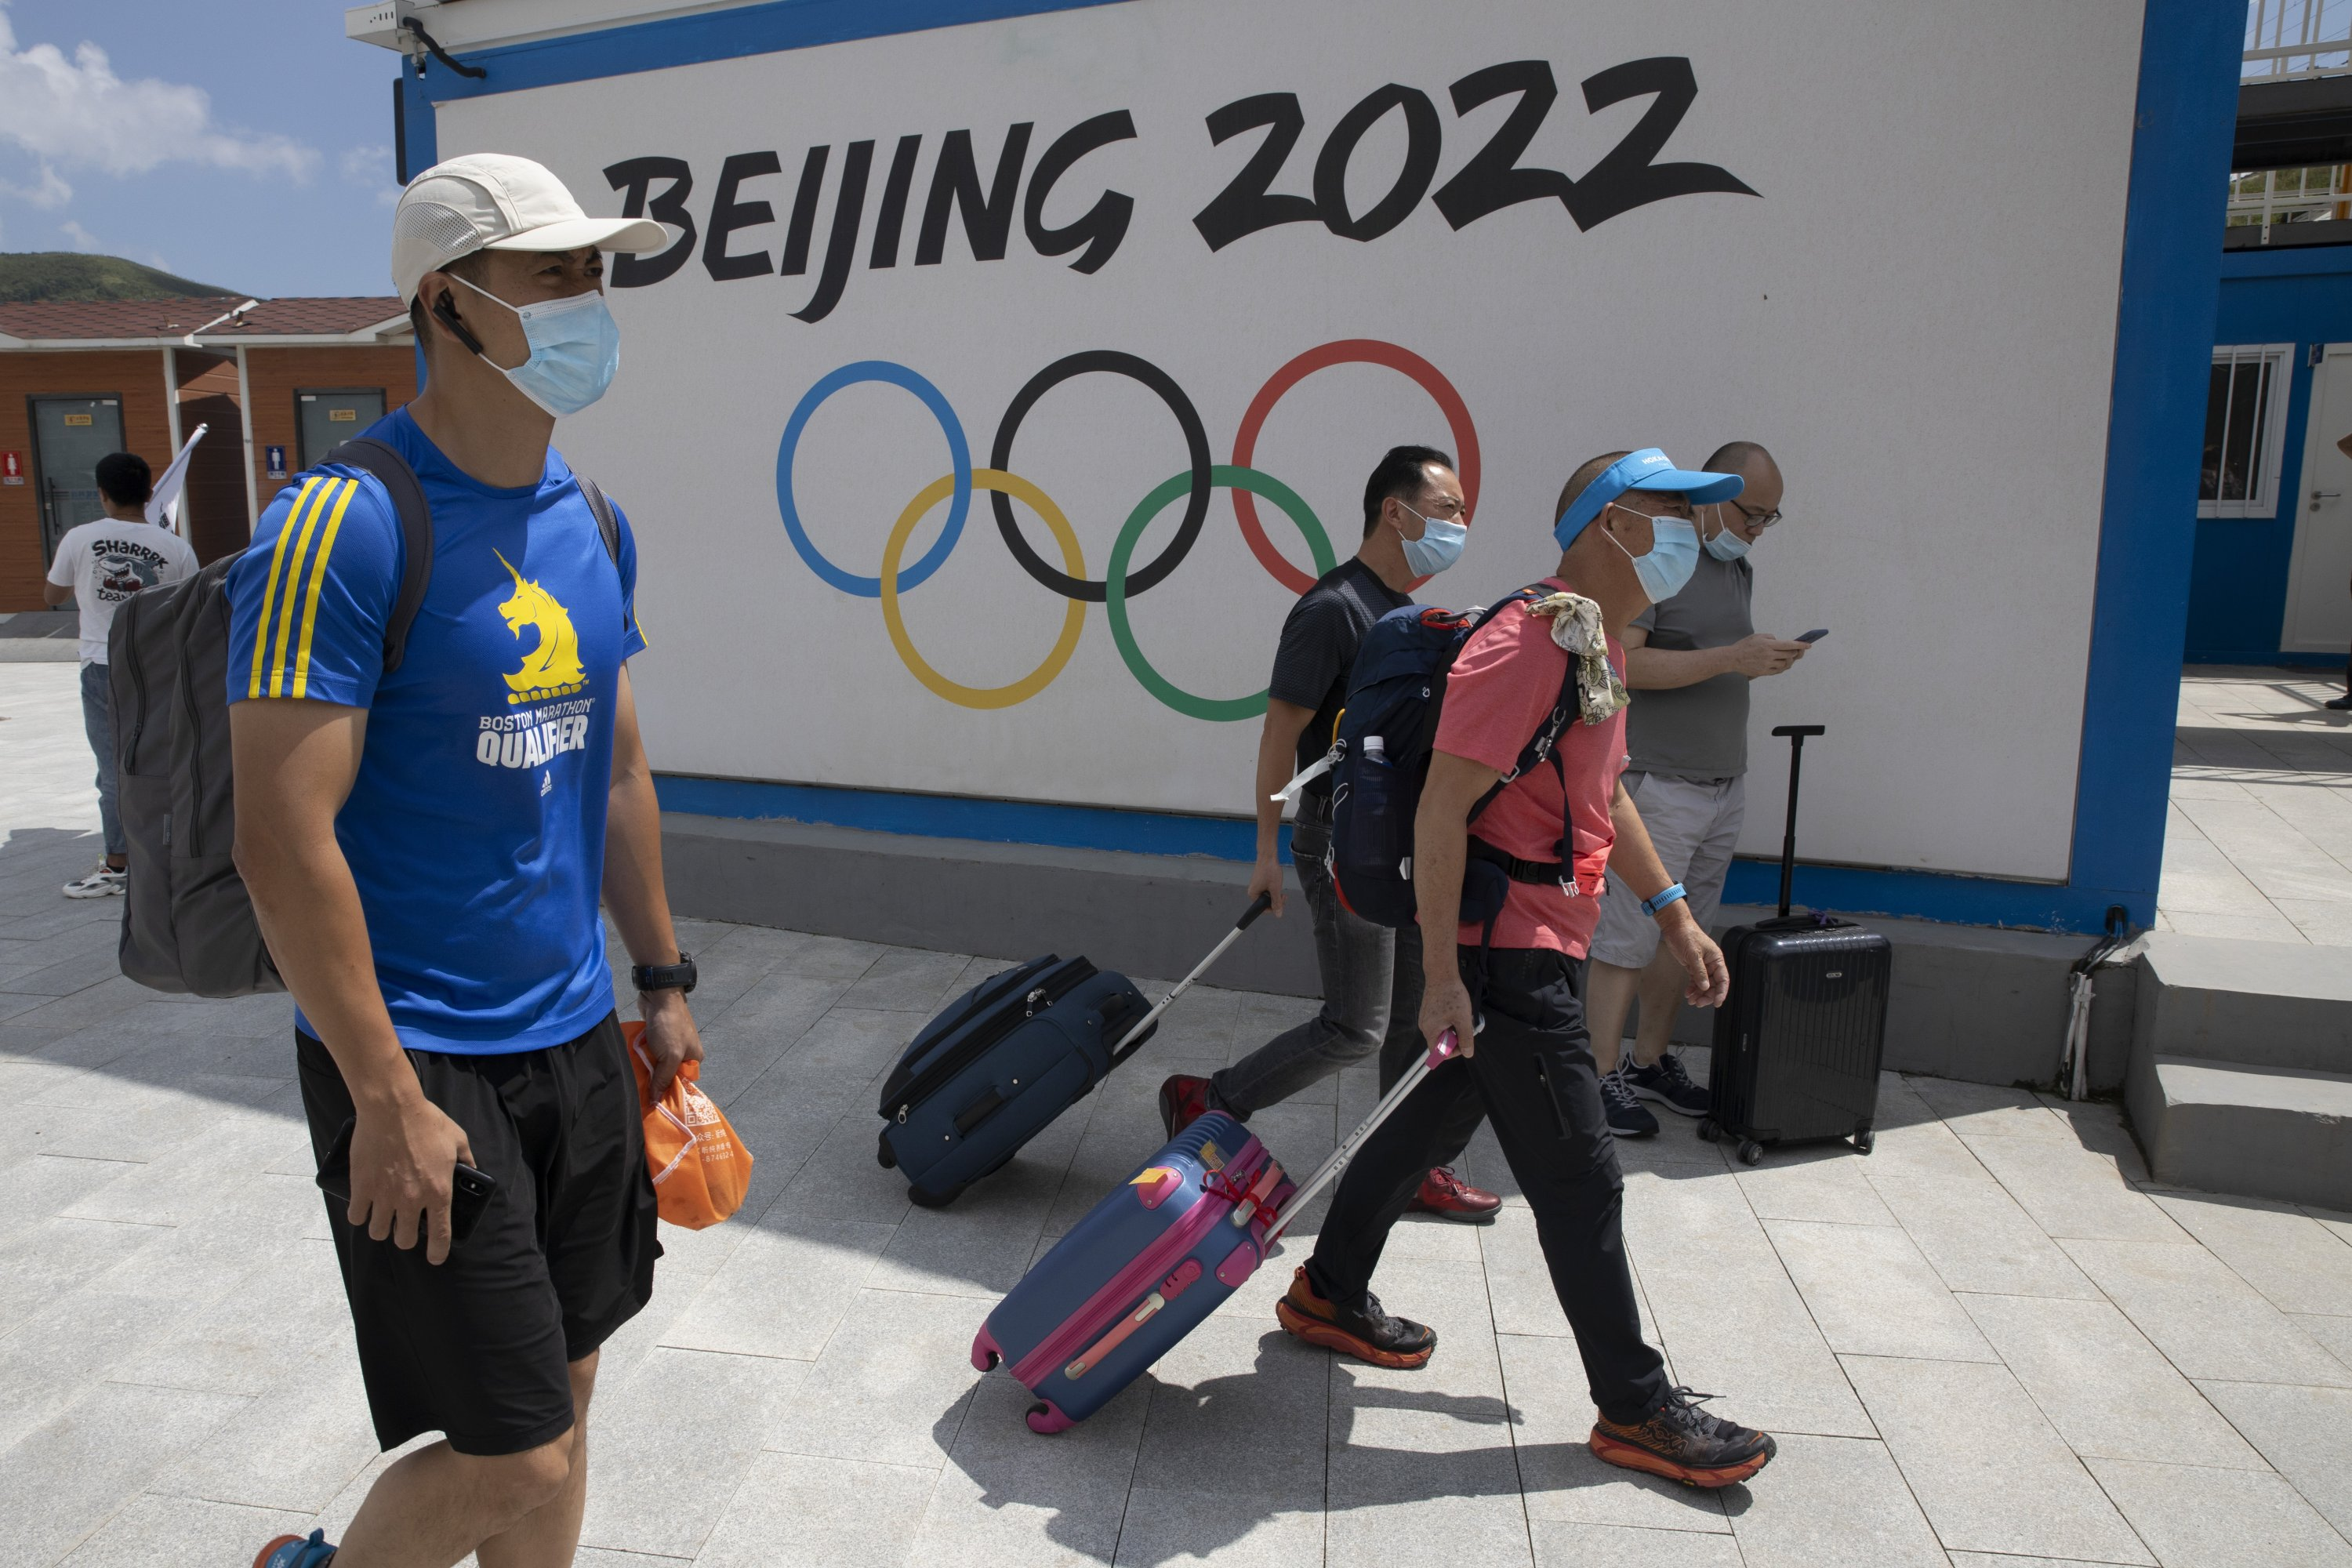 More Than 160 Rights Groups Ask Ioc To Move 2022 Olympics From China Daily Sabah